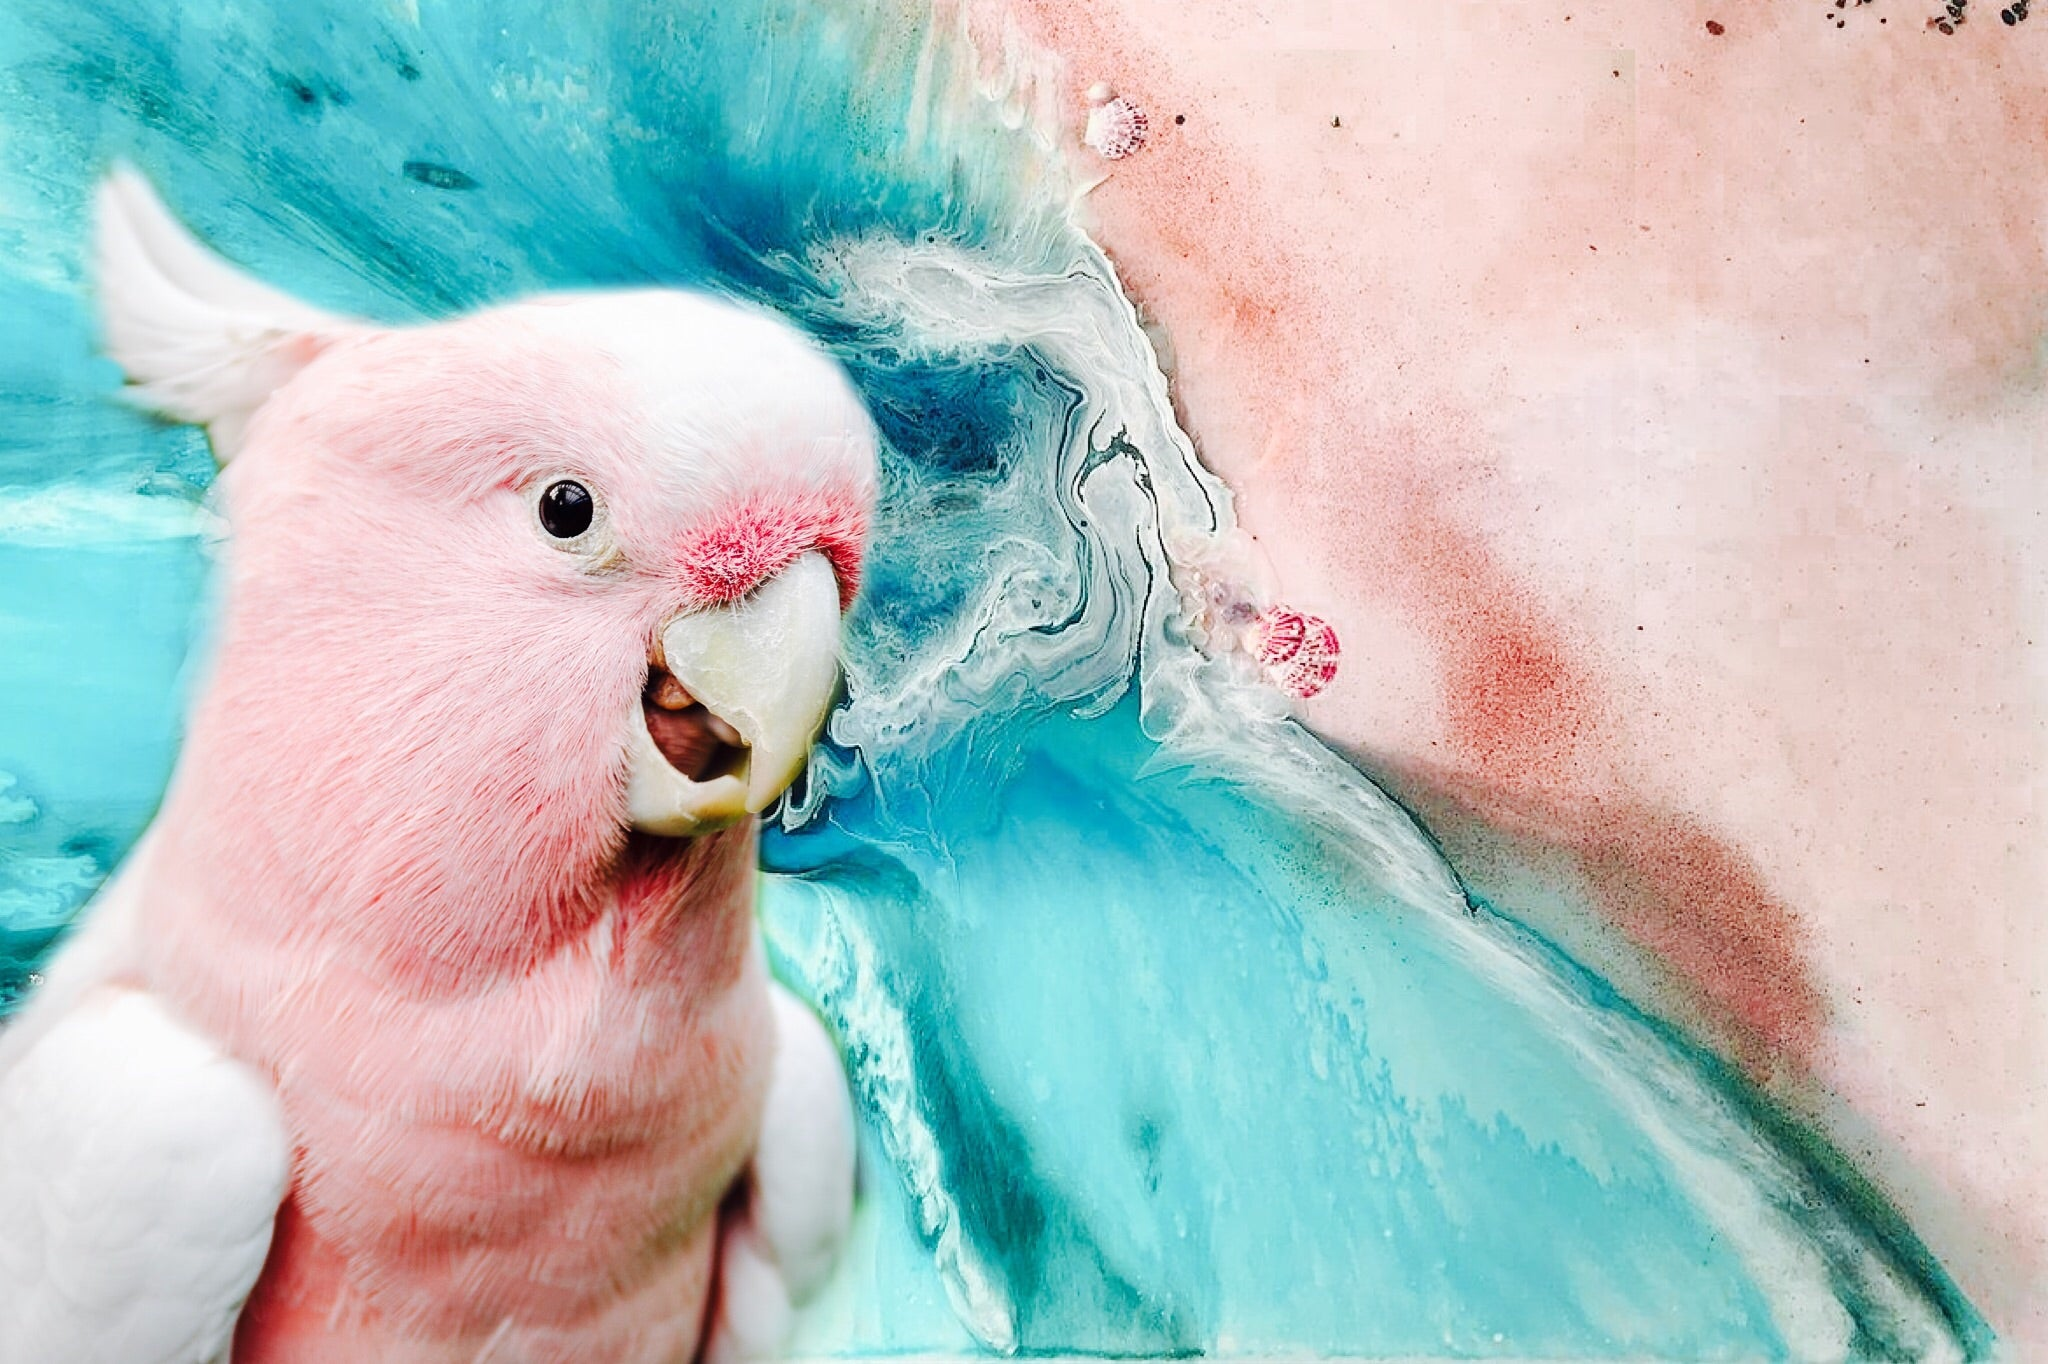 Ocean Bird. Teal and Pink. Pink Gallah Parrot. Art Print Antuanelle 2 Bird Artwork. Limited Edition